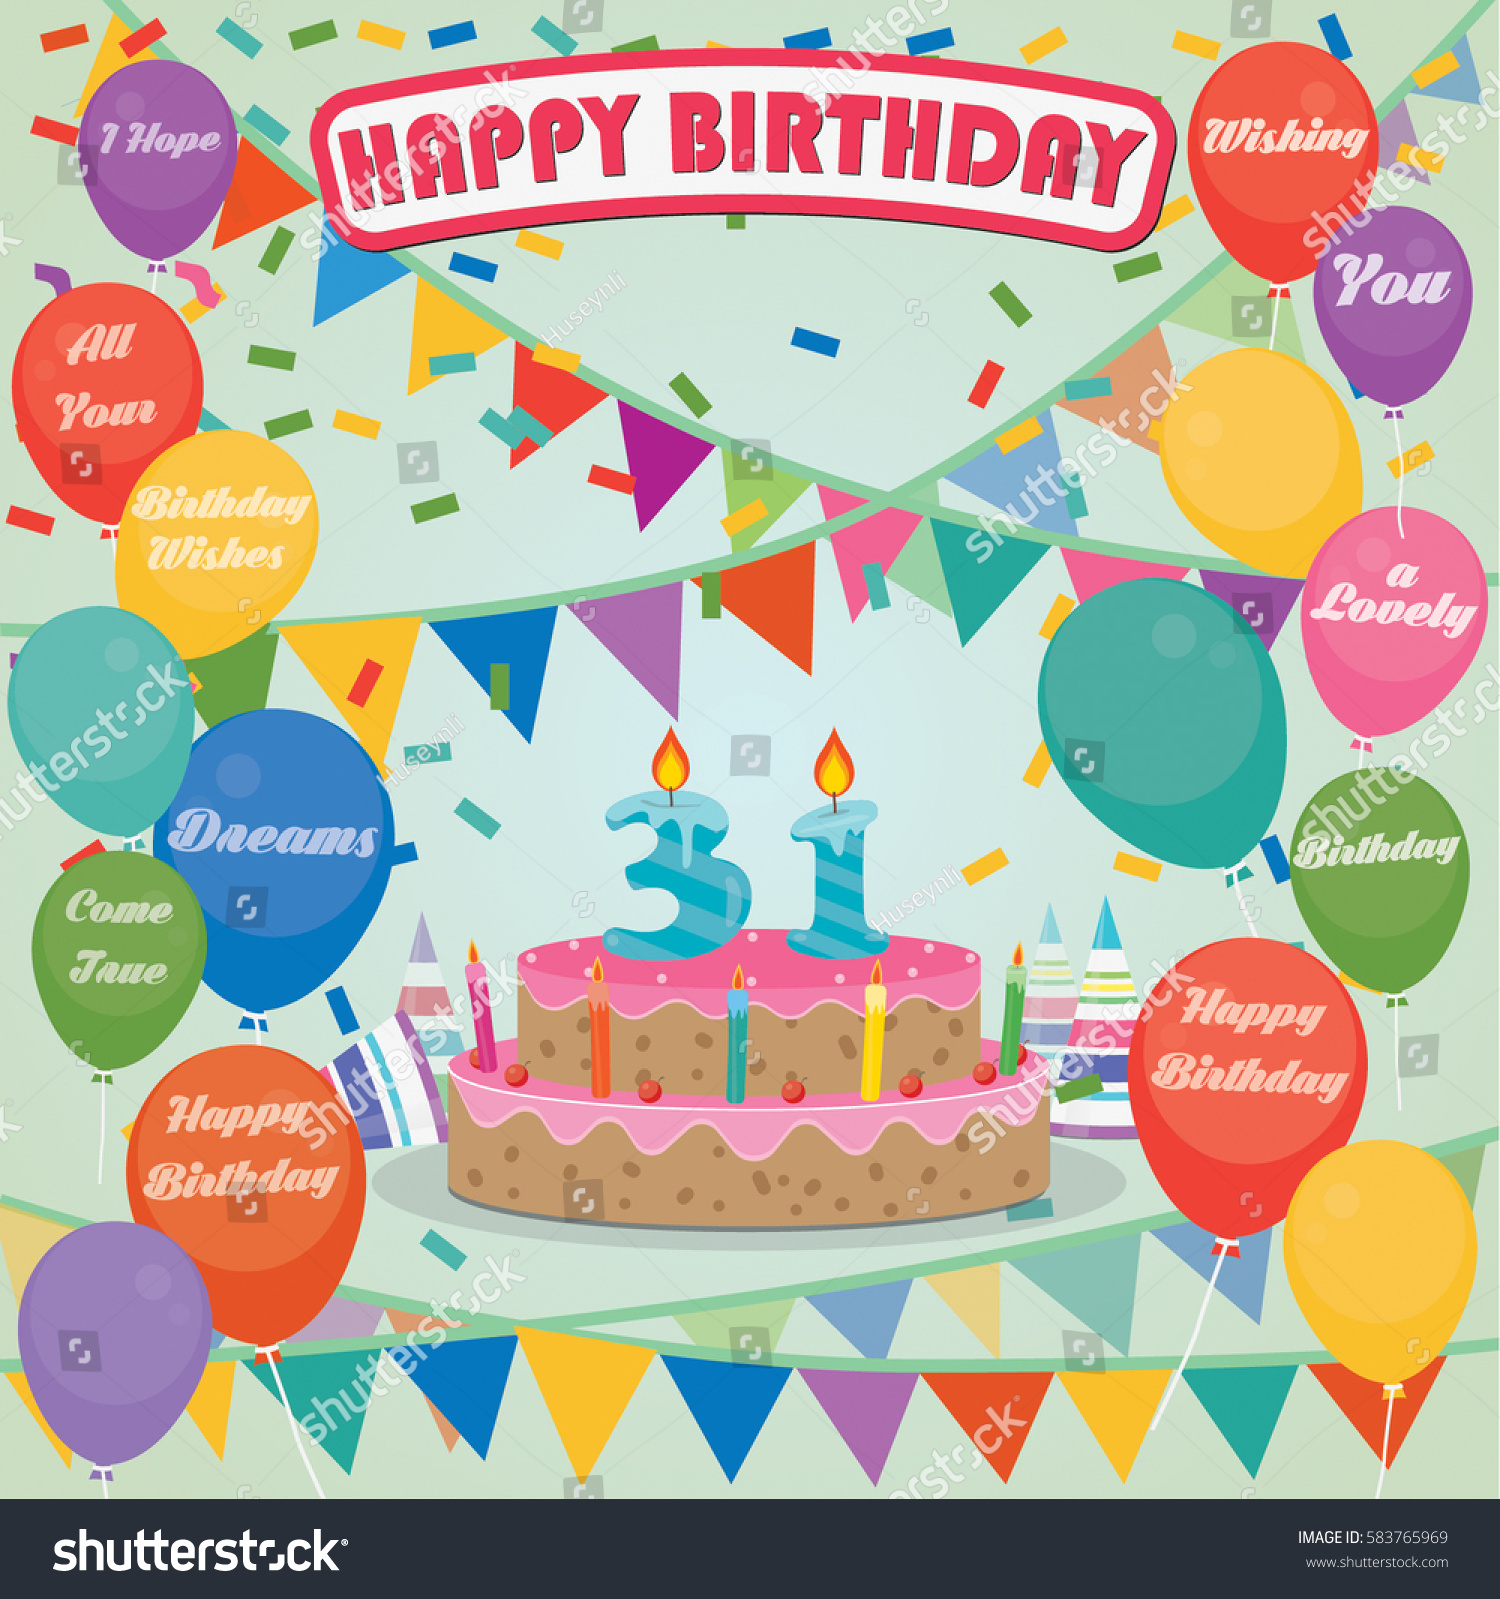 31th Birthday Cake And Decoration Background In Flat Design With